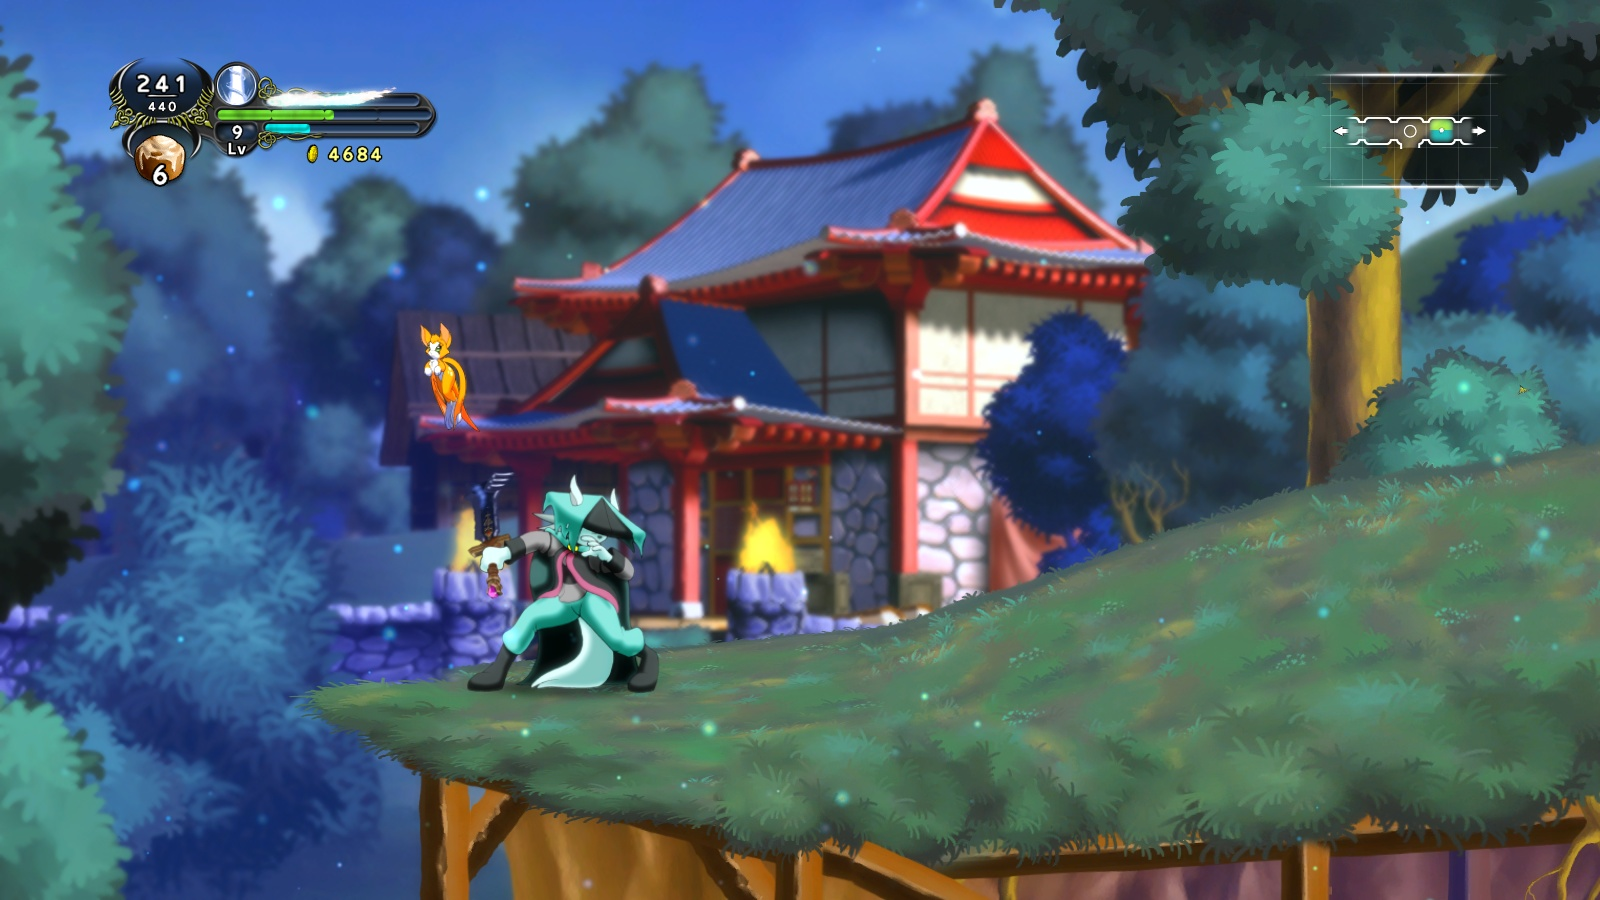 Dust: An Elysian Tail – Hardcore Gaming 101